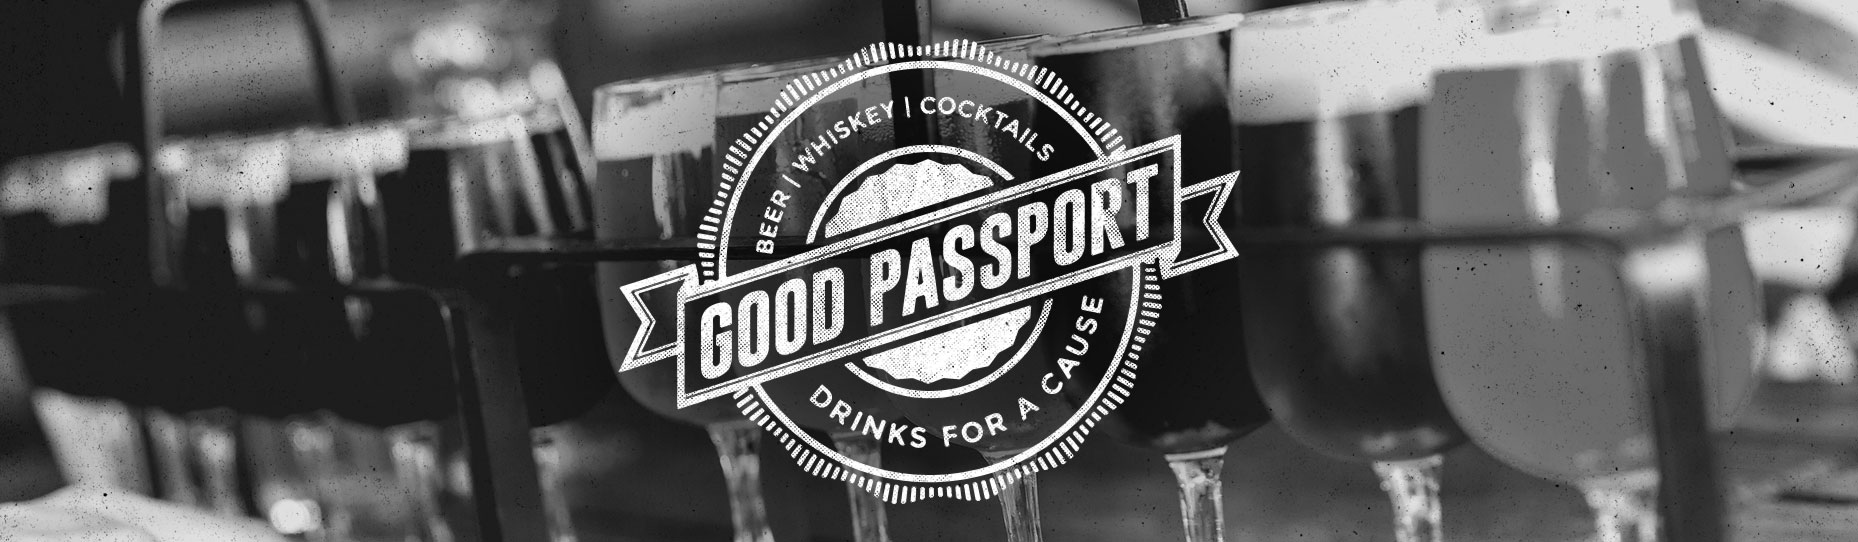 The Good Passports